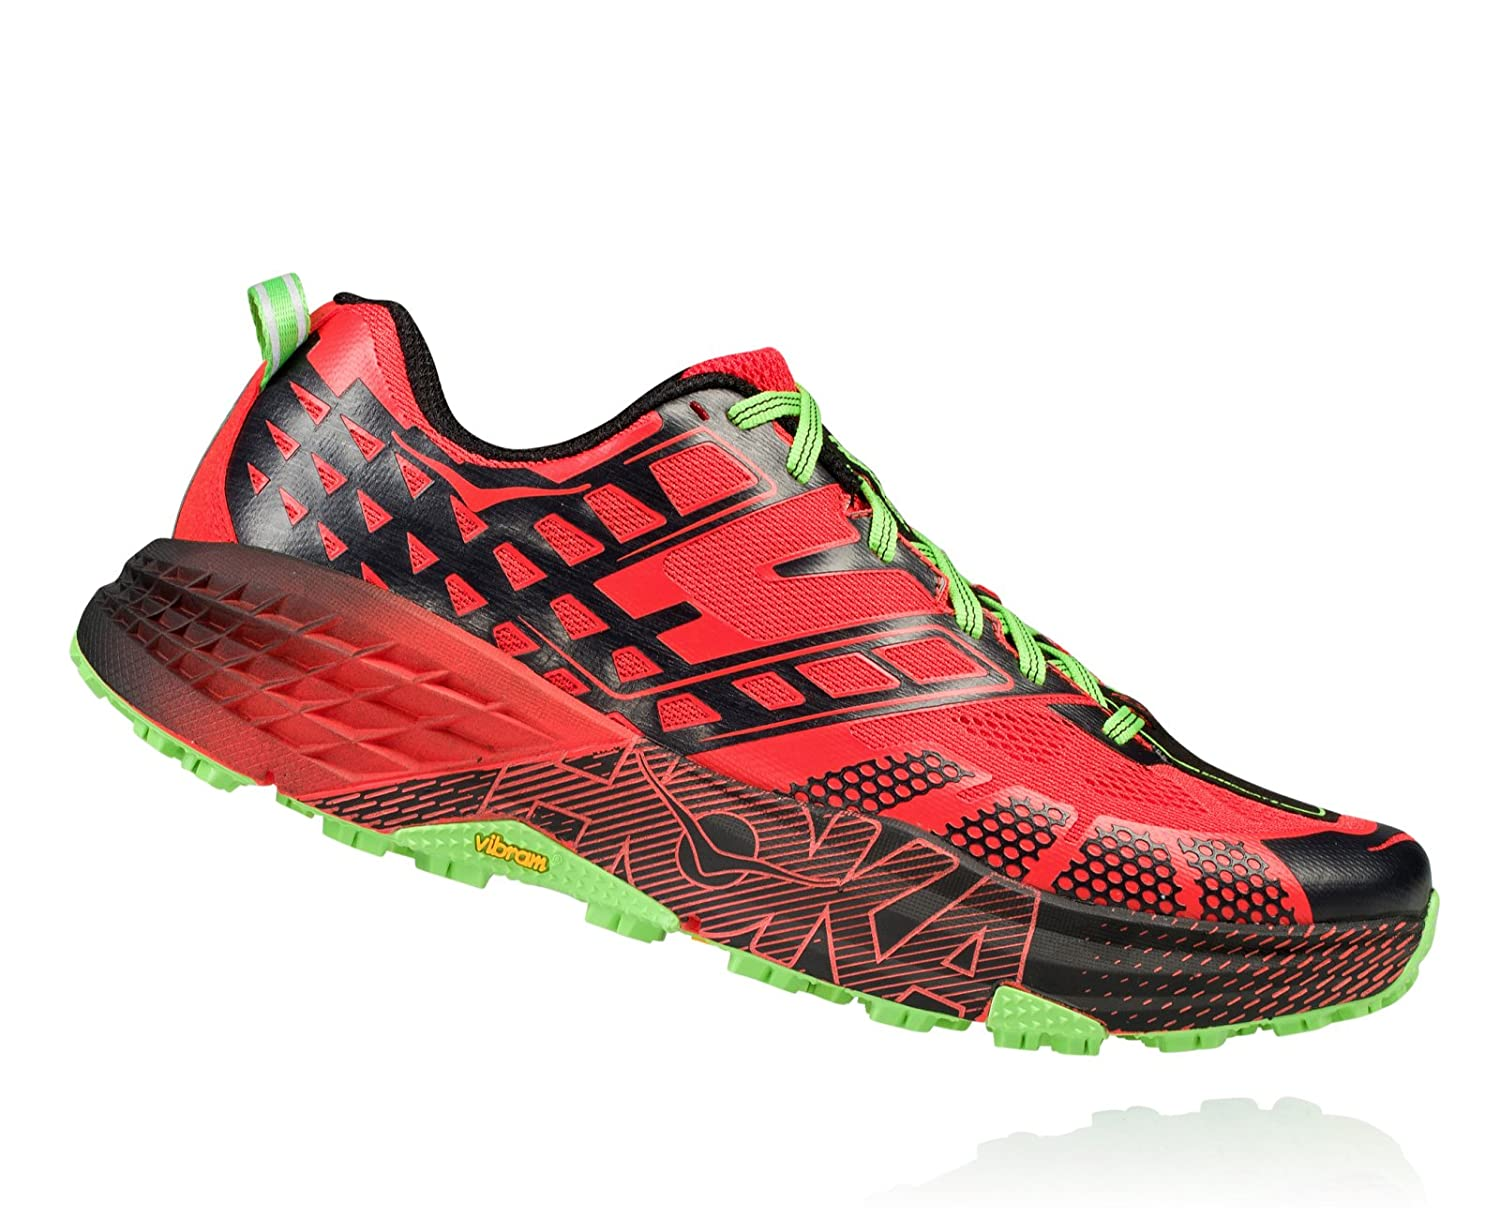 HOKA ONE ONE Mens Speedgoat 2 Trail Running Shoe Grenadine/Jasmine Green Size 9 M US: Amazon.es: Zapatos y complementos